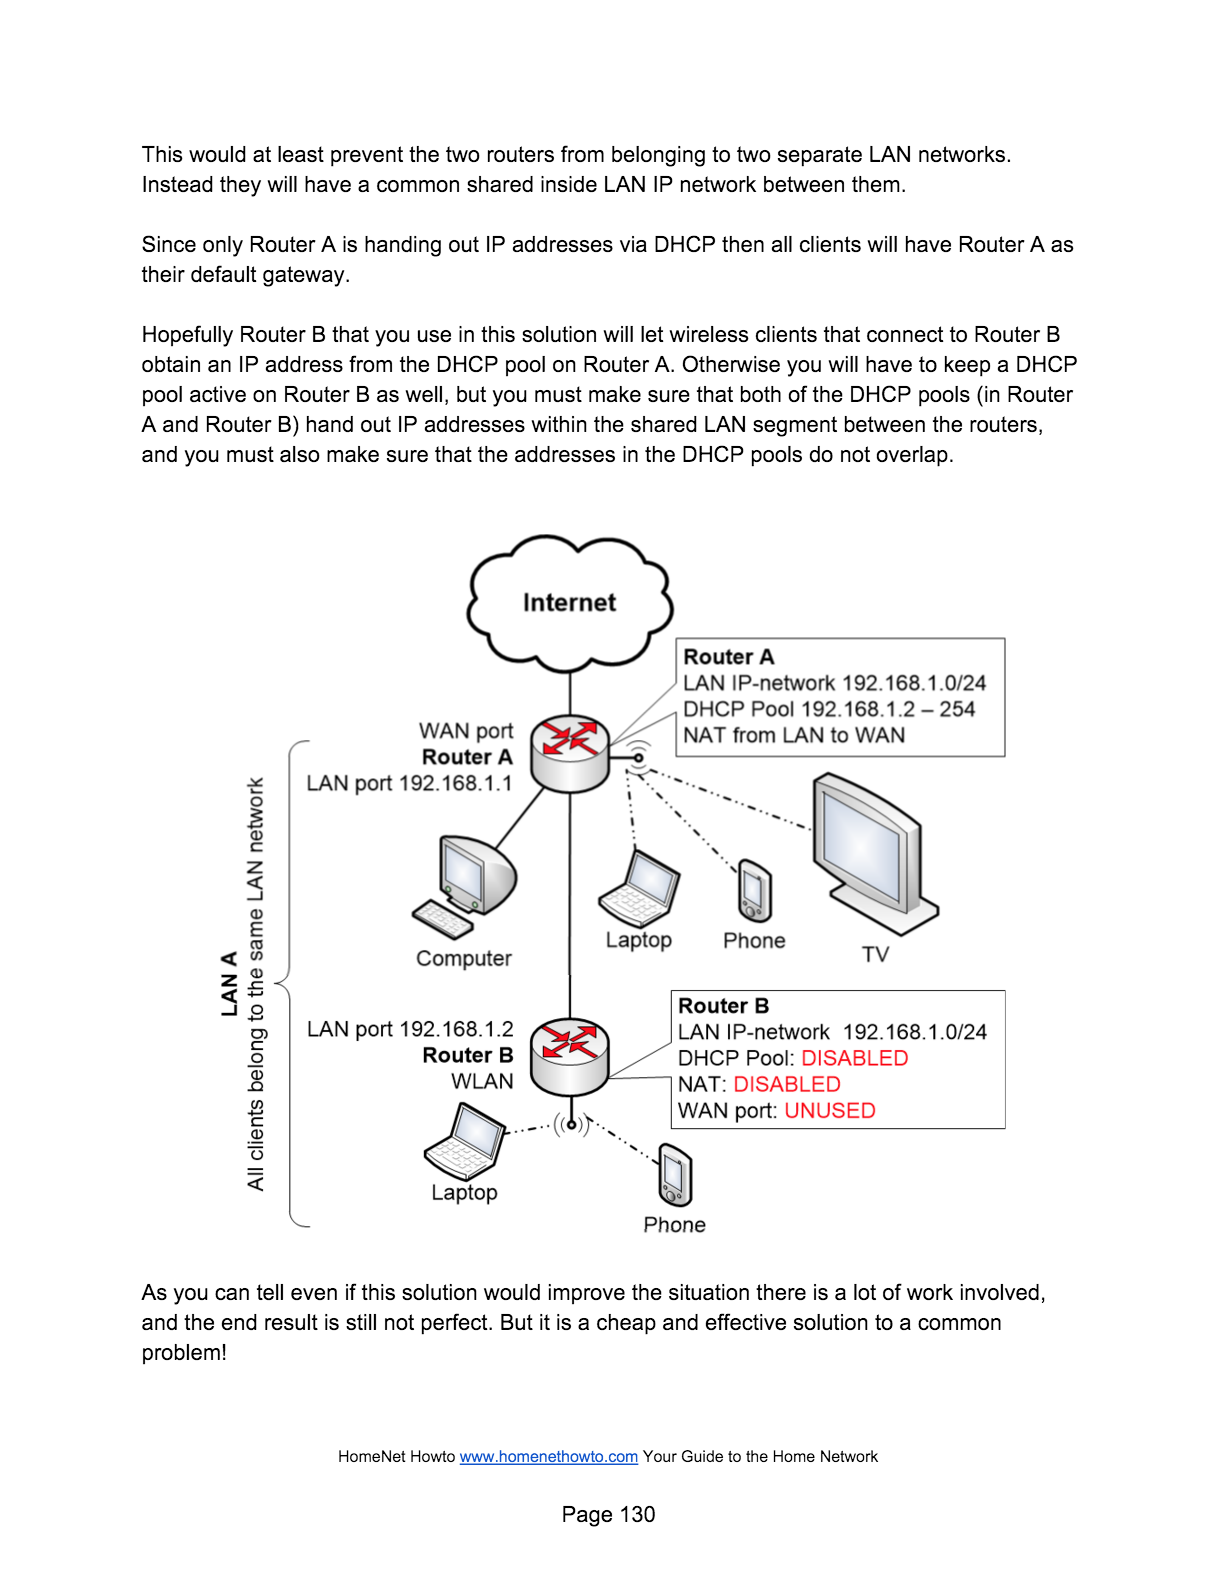 webshop licensing homenet howto it has been somewhat edited with a text flow that is more suitable to the leaflet format the pdf does not contain advertising or drm digital rights